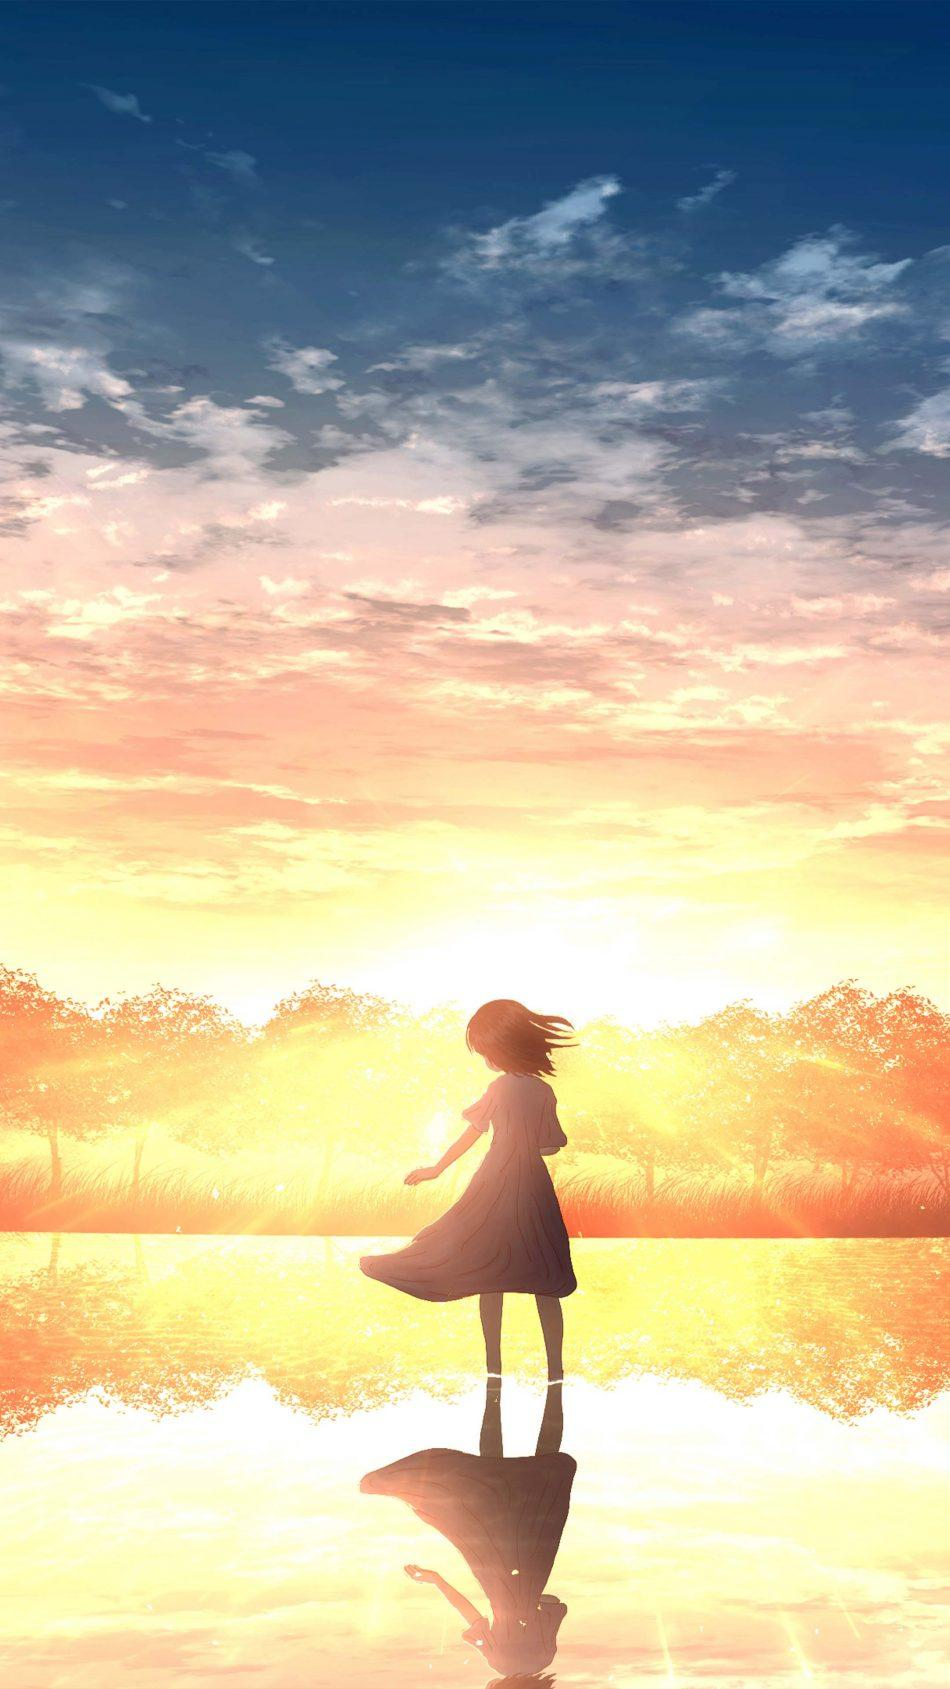 Loneliness Sunset 4k Anime Wallpapers - Wallpaper Cave